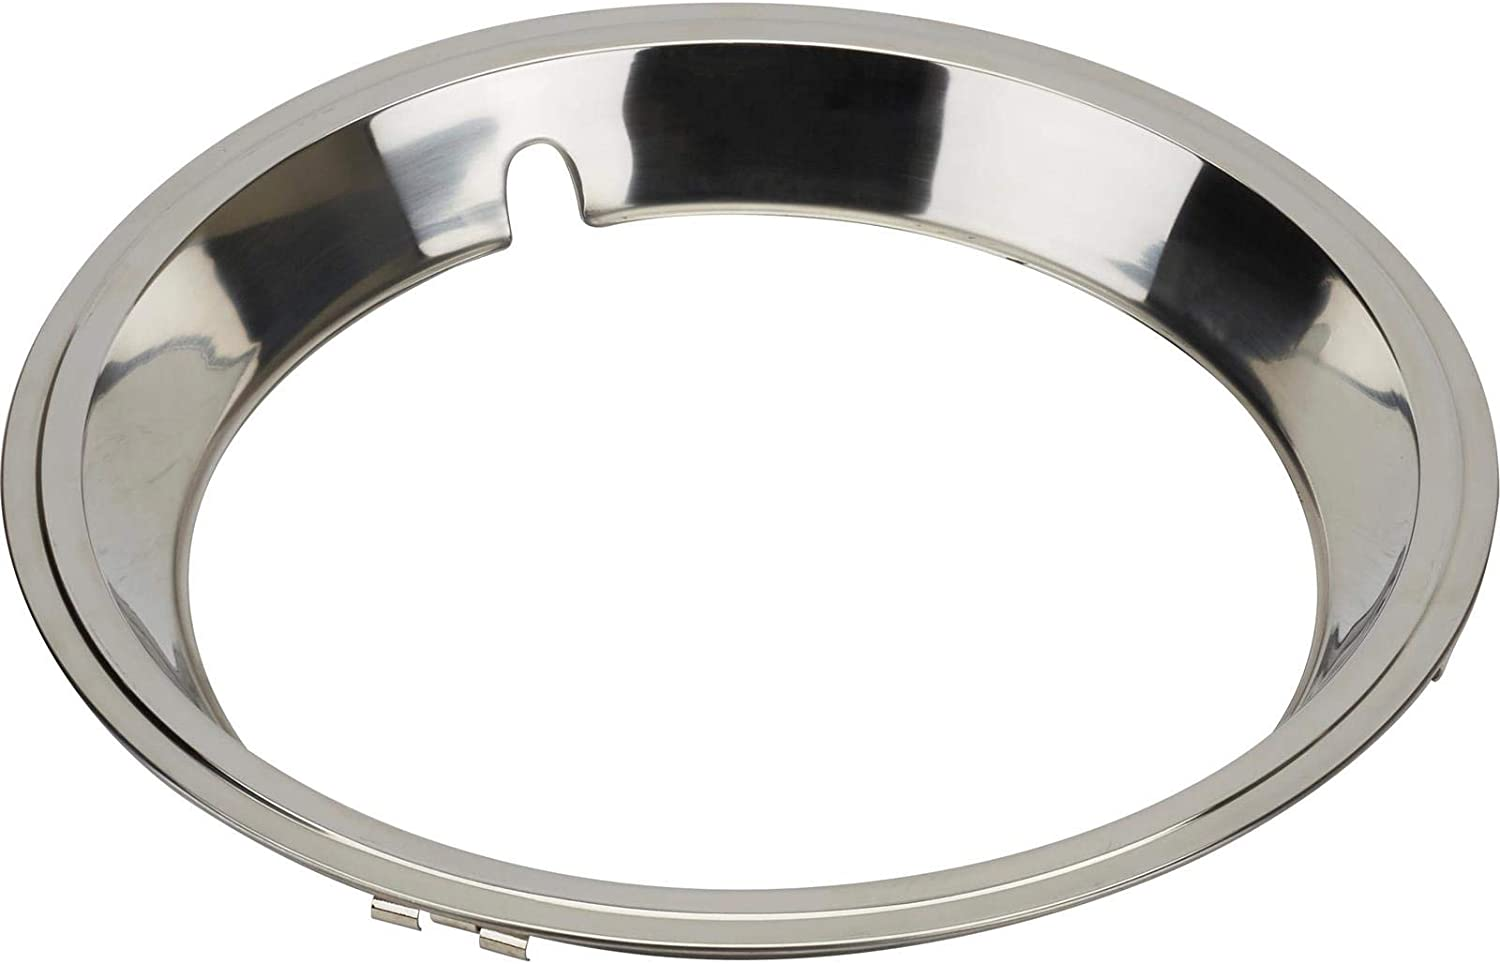 1967-1969 quality Cheap SALE Start assurance 14x6 GM Ring Trim Replacement